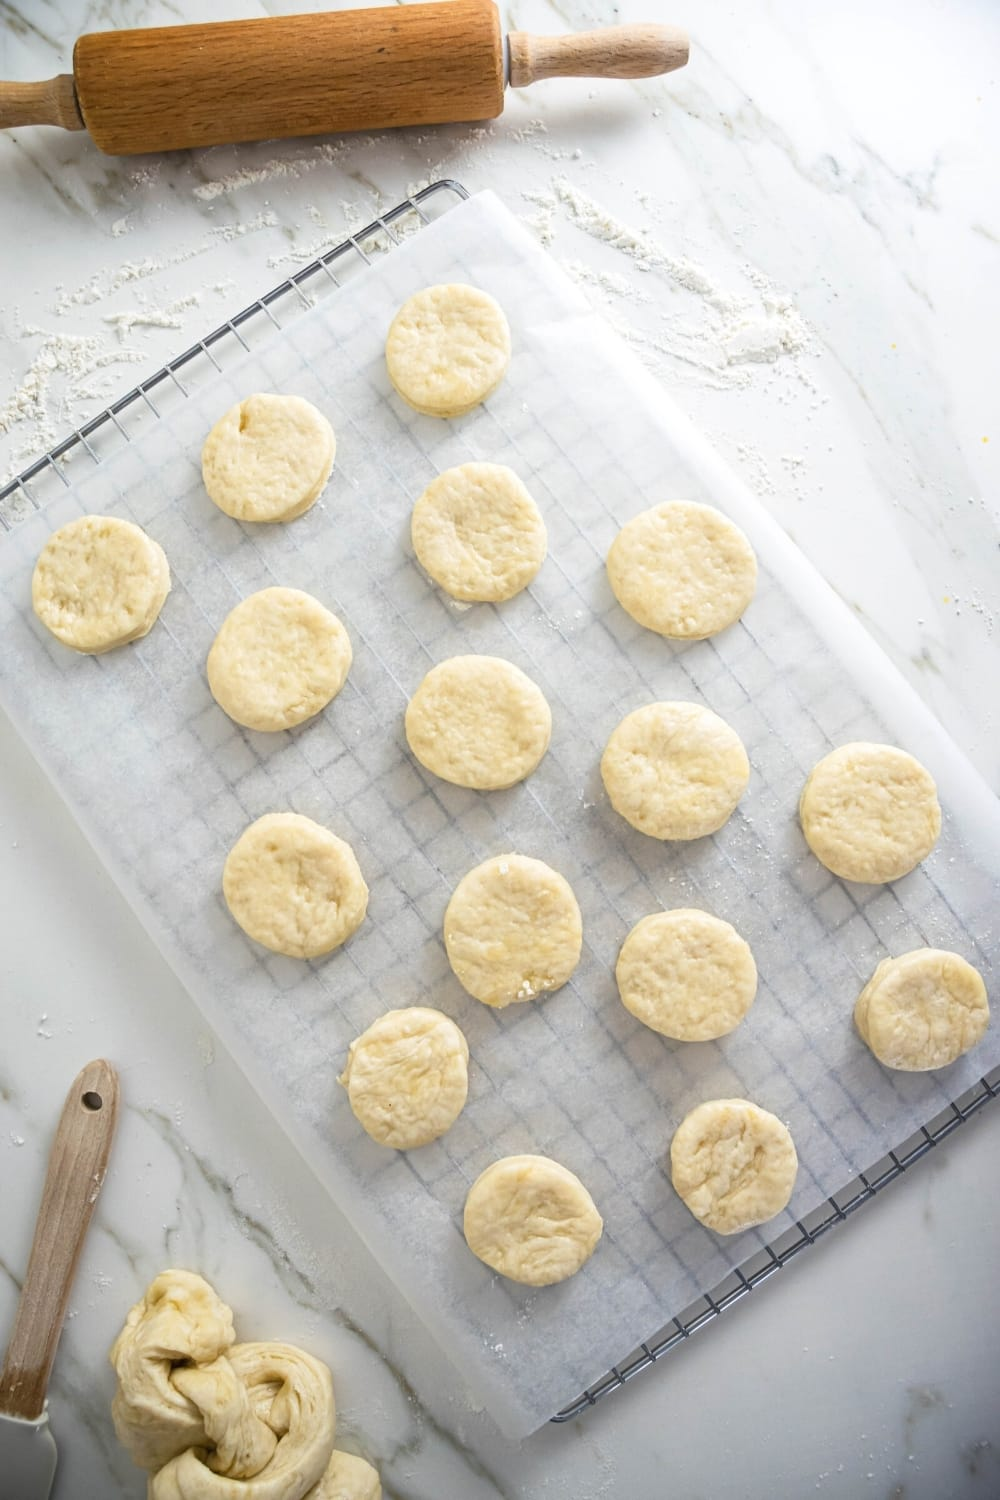 A wire rack with a piece of parchment paper on top and 14 biscuits on it. Behind the wire rack is a rolling pin on a white counter.